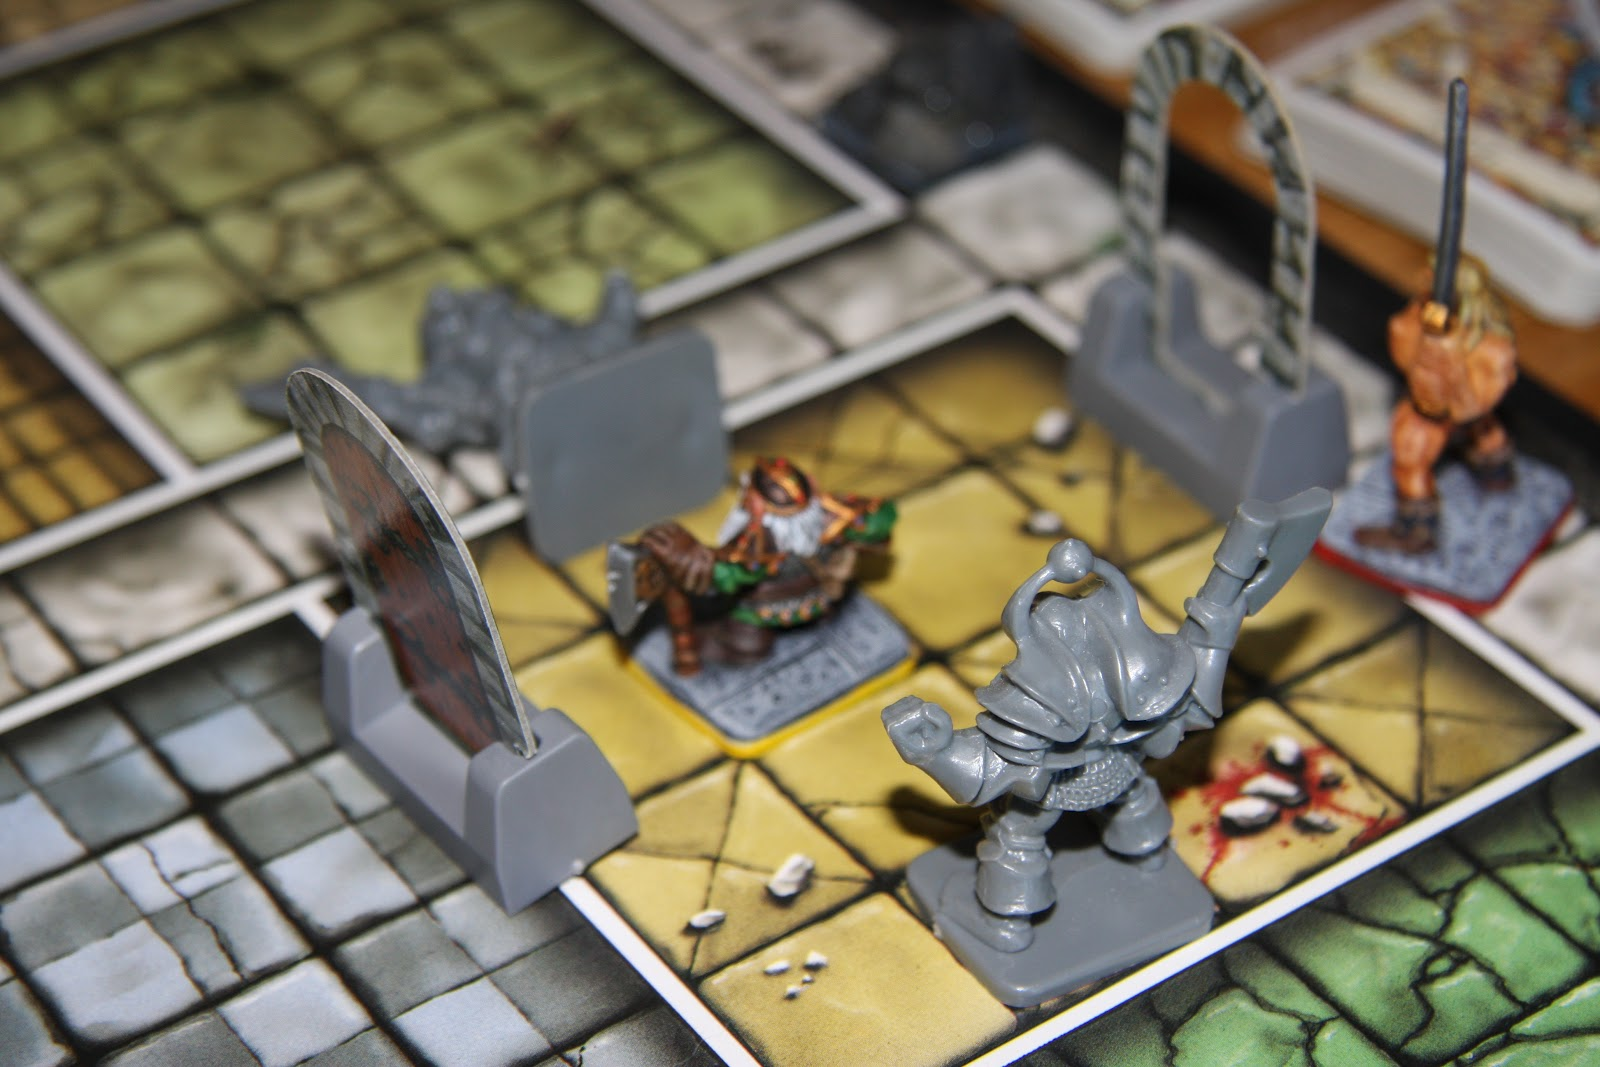 Ye Olde Inn's Community Blog on HeroQuest: Saturday Night